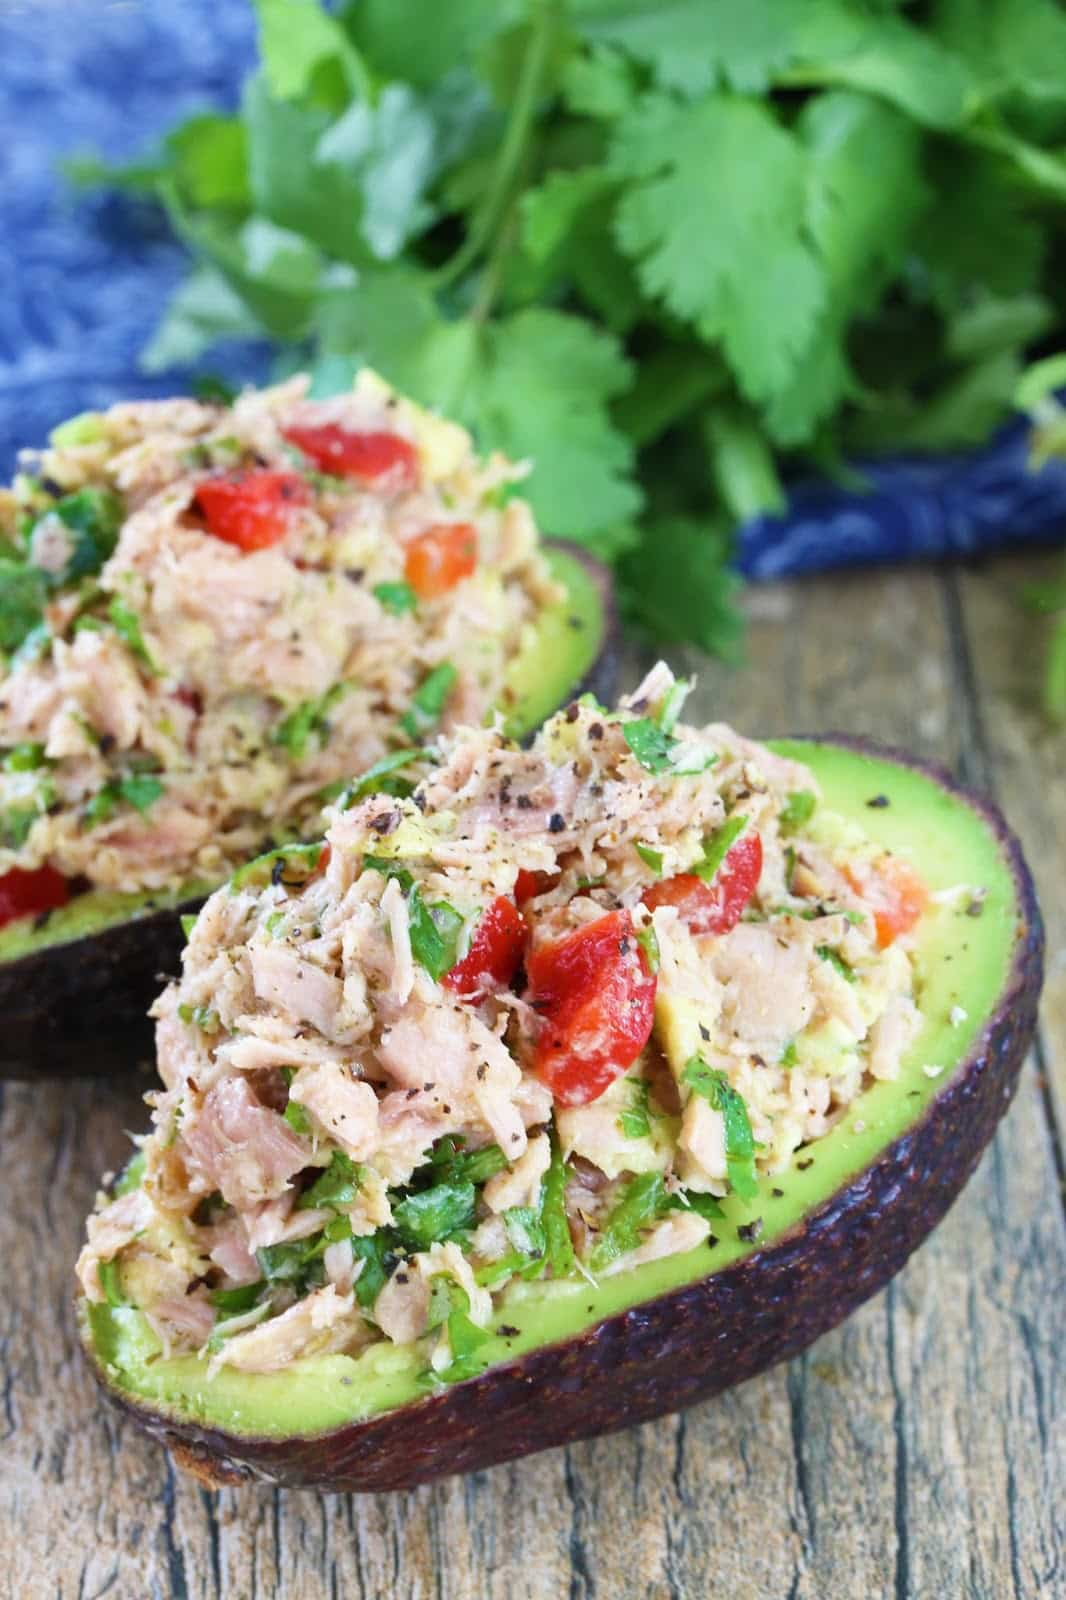 Amazingly good and healthy tuna salad recipe. Learn how to cook great Amazingly good and healthy tuna salad. multivarkaixm2f.ga deliver fine selection of quality Amazingly good and healthy tuna salad recipes equipped with ratings, reviews and mixing tips.